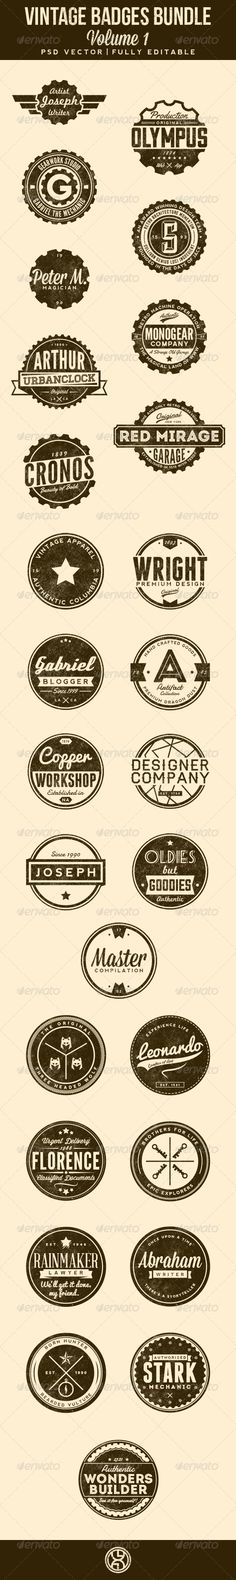 27 Vintage Badges Bundle Template | Buy and Download: http://graphicriver.net/item/27-vintage-badges-bundle-volume-1/7306340?WT.ac=category_thumb&WT.z_author=mining&ref=ksioks